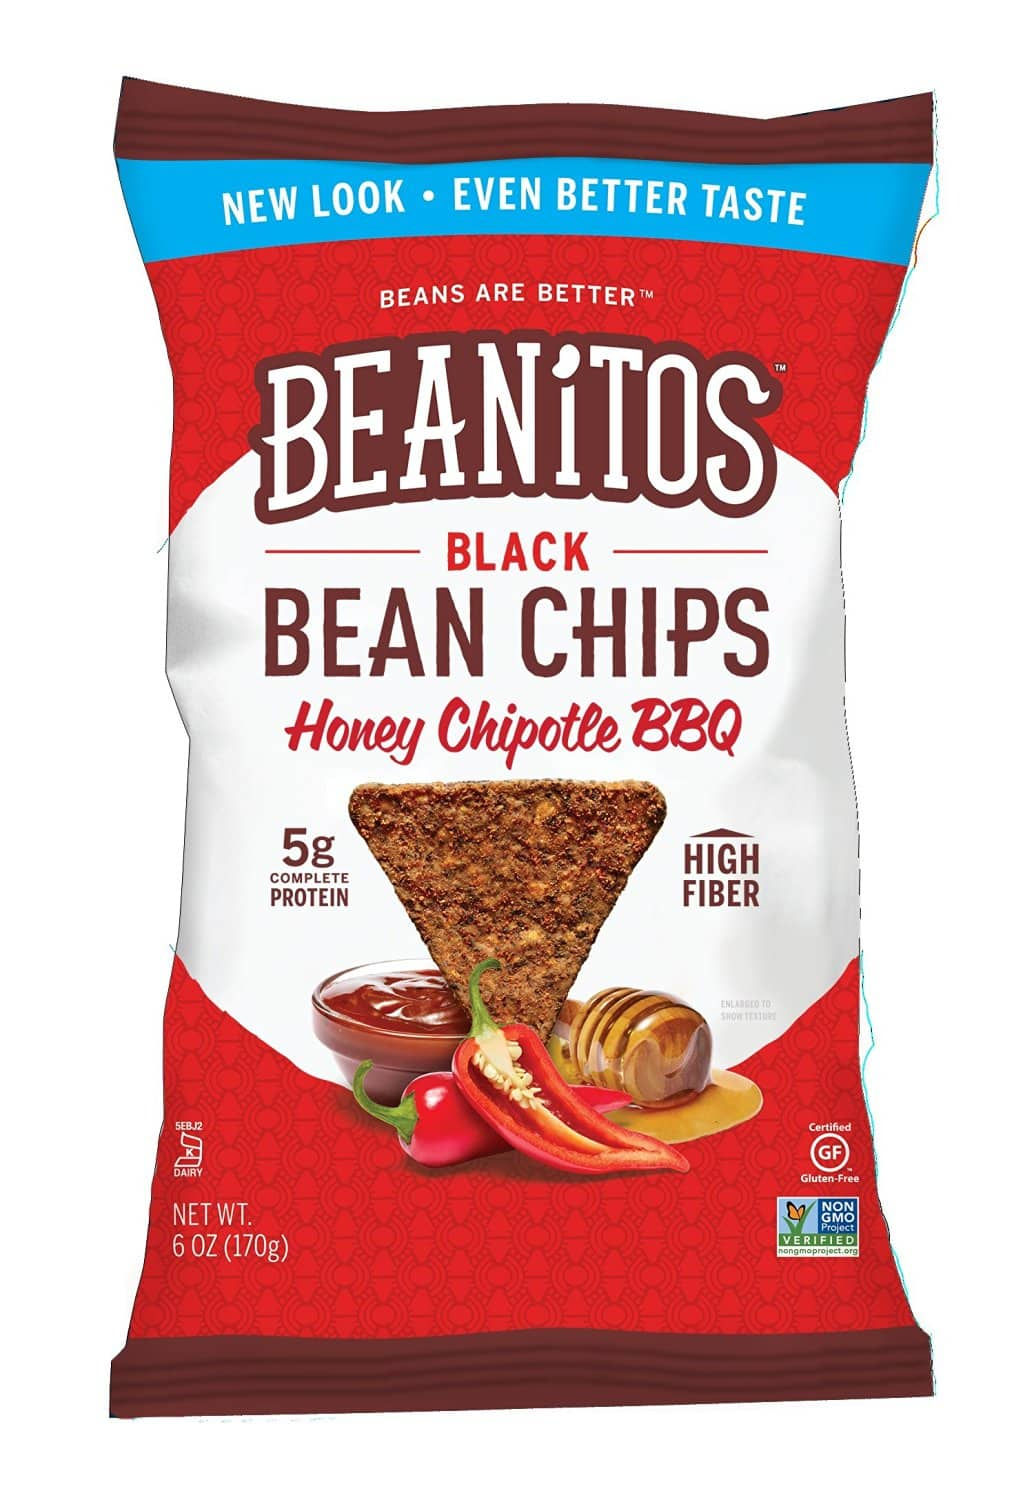 DEAD- Beanitos Black Bean Honey Chipotle BBQ, 6 Ounce (Pack of 6) $2.63 or less with Amazon S & S